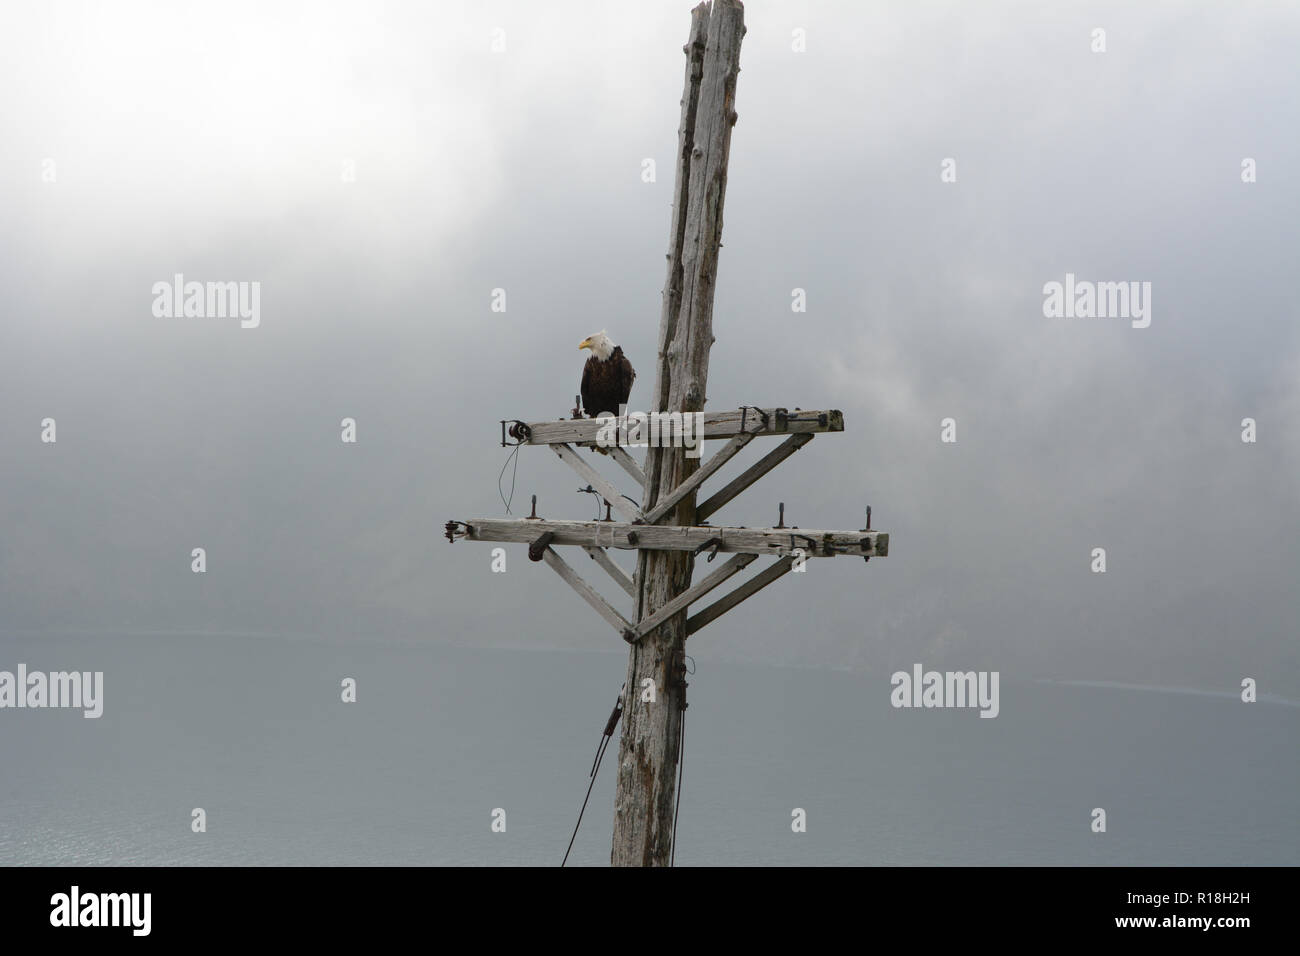 A bald eagle perched on an old electrical pole above the Bering Sea and the town of Dutch Harbor, Unalaska Island, Alaska, USA. - Stock Image